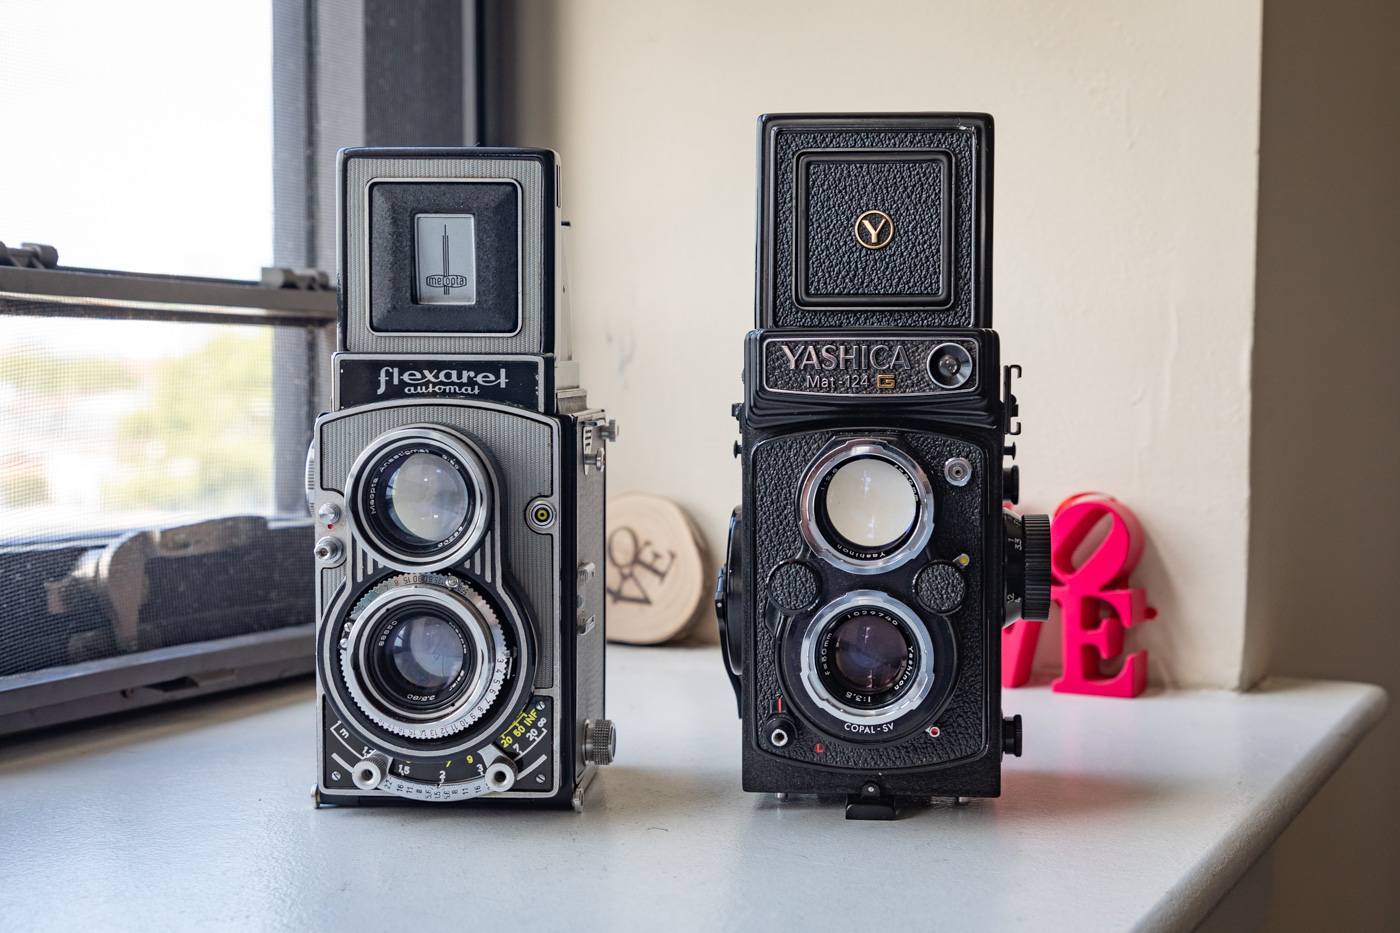 Flexaret Automat and Yashica Mat-124 G